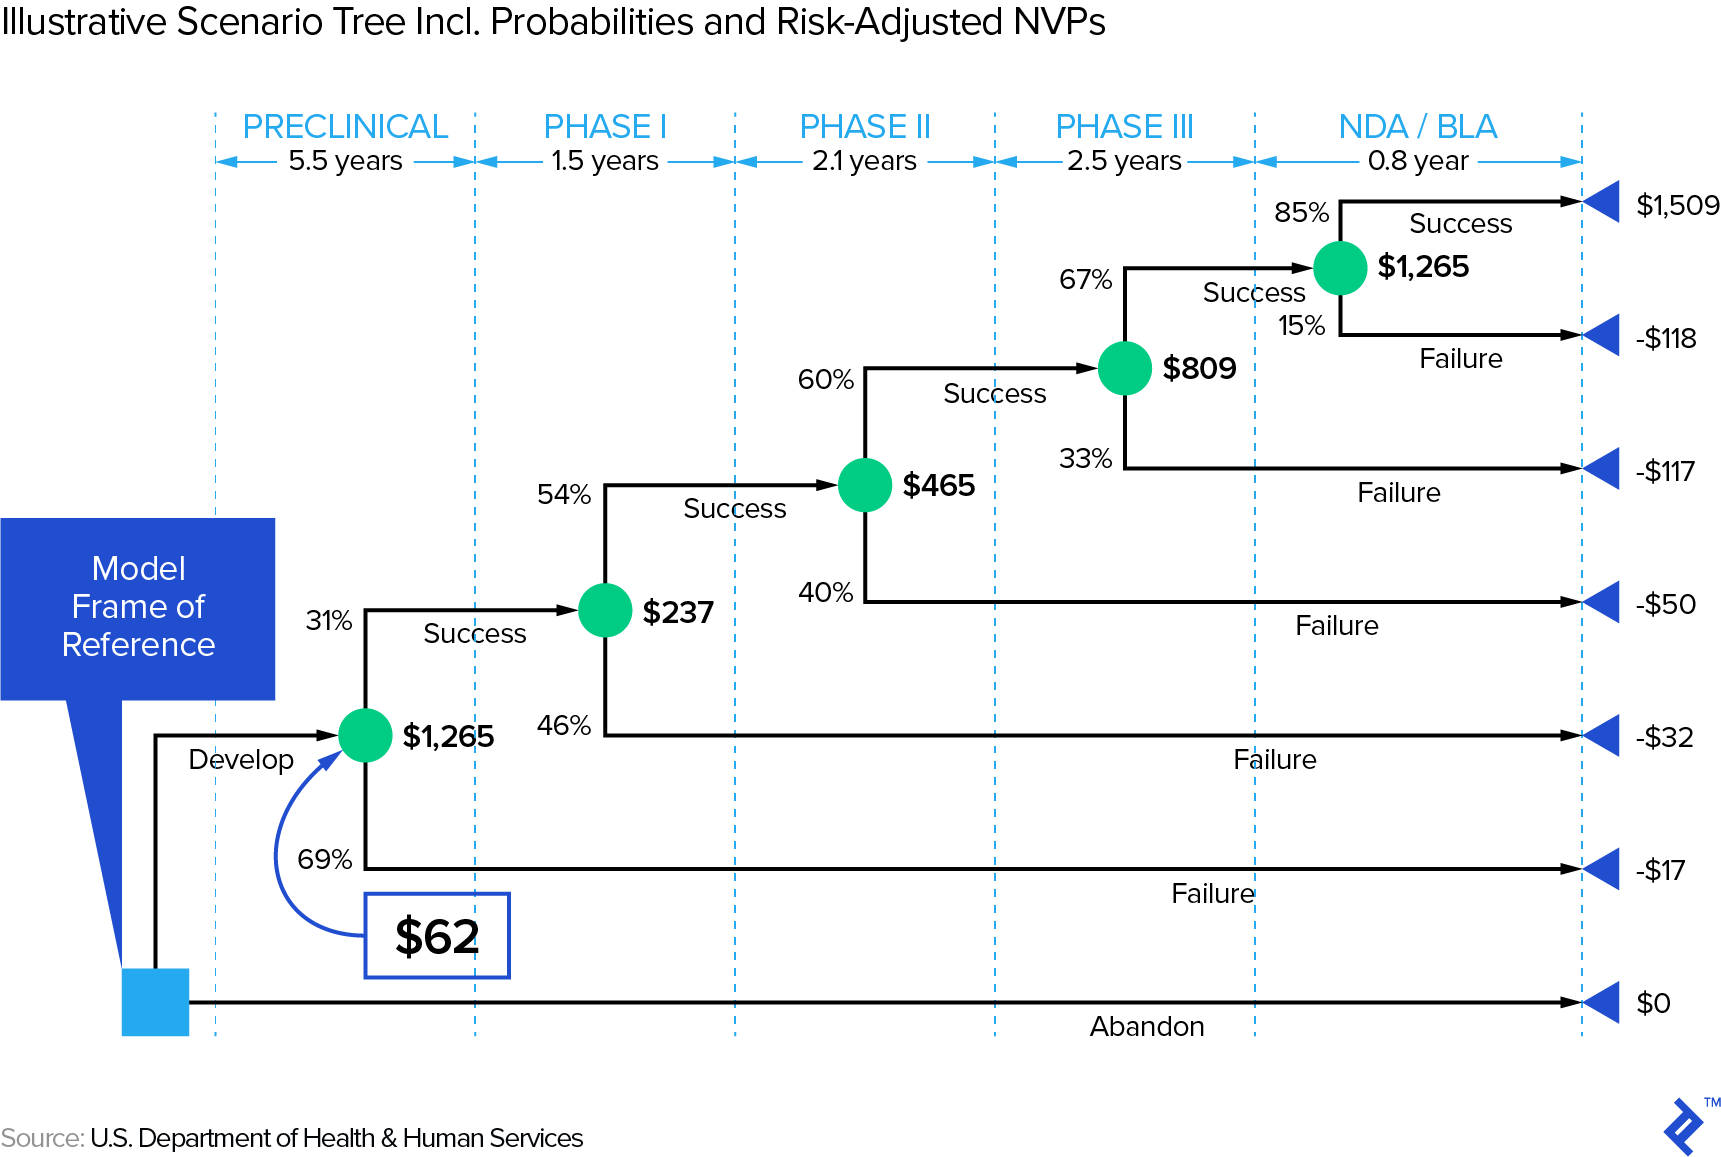 An illustrative scenario tree including probabilities and risk-adjusted NVPs